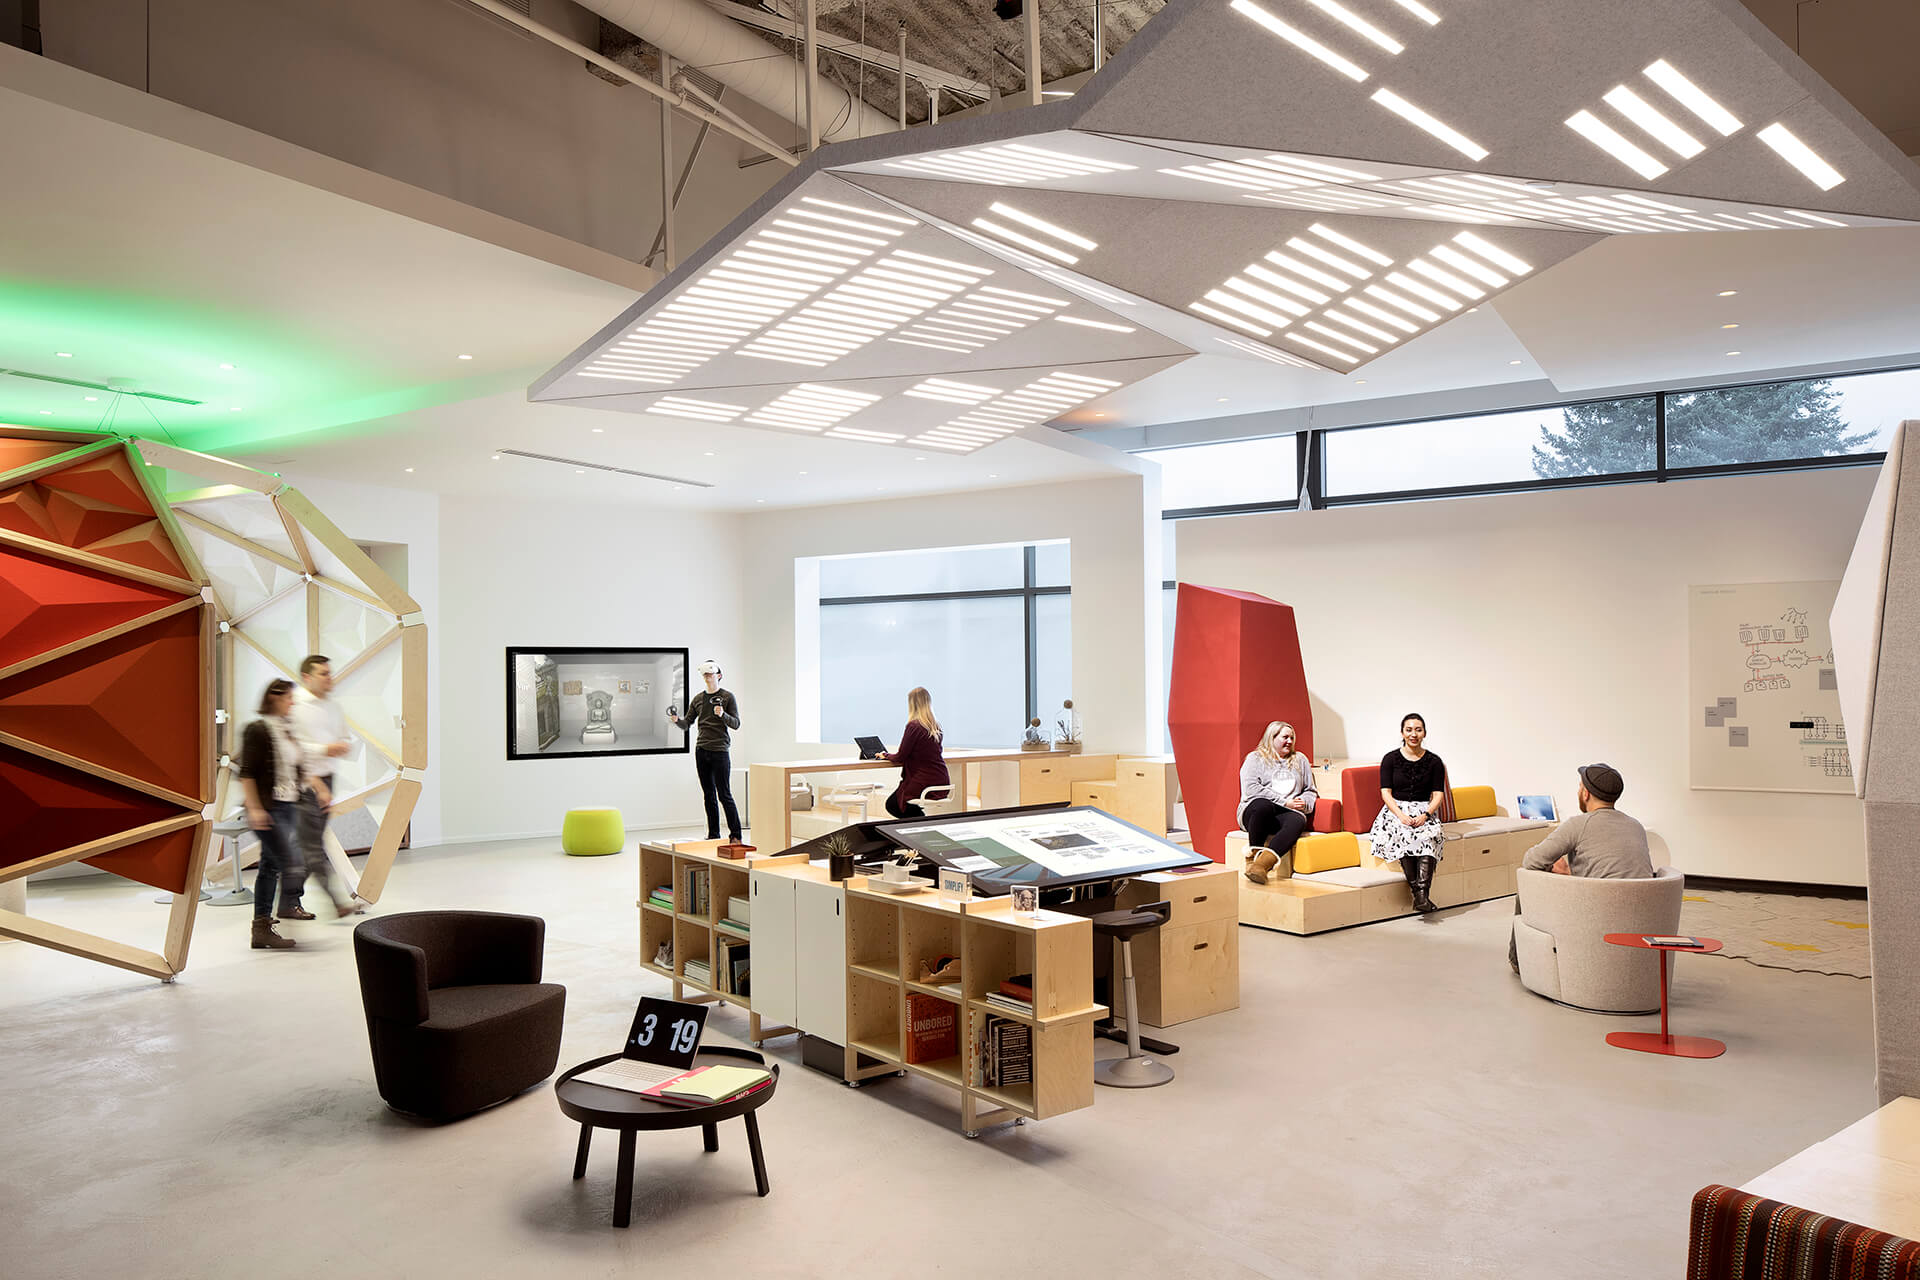 Frame How Covid 19 Could Impact Workplace Design Managing Movement